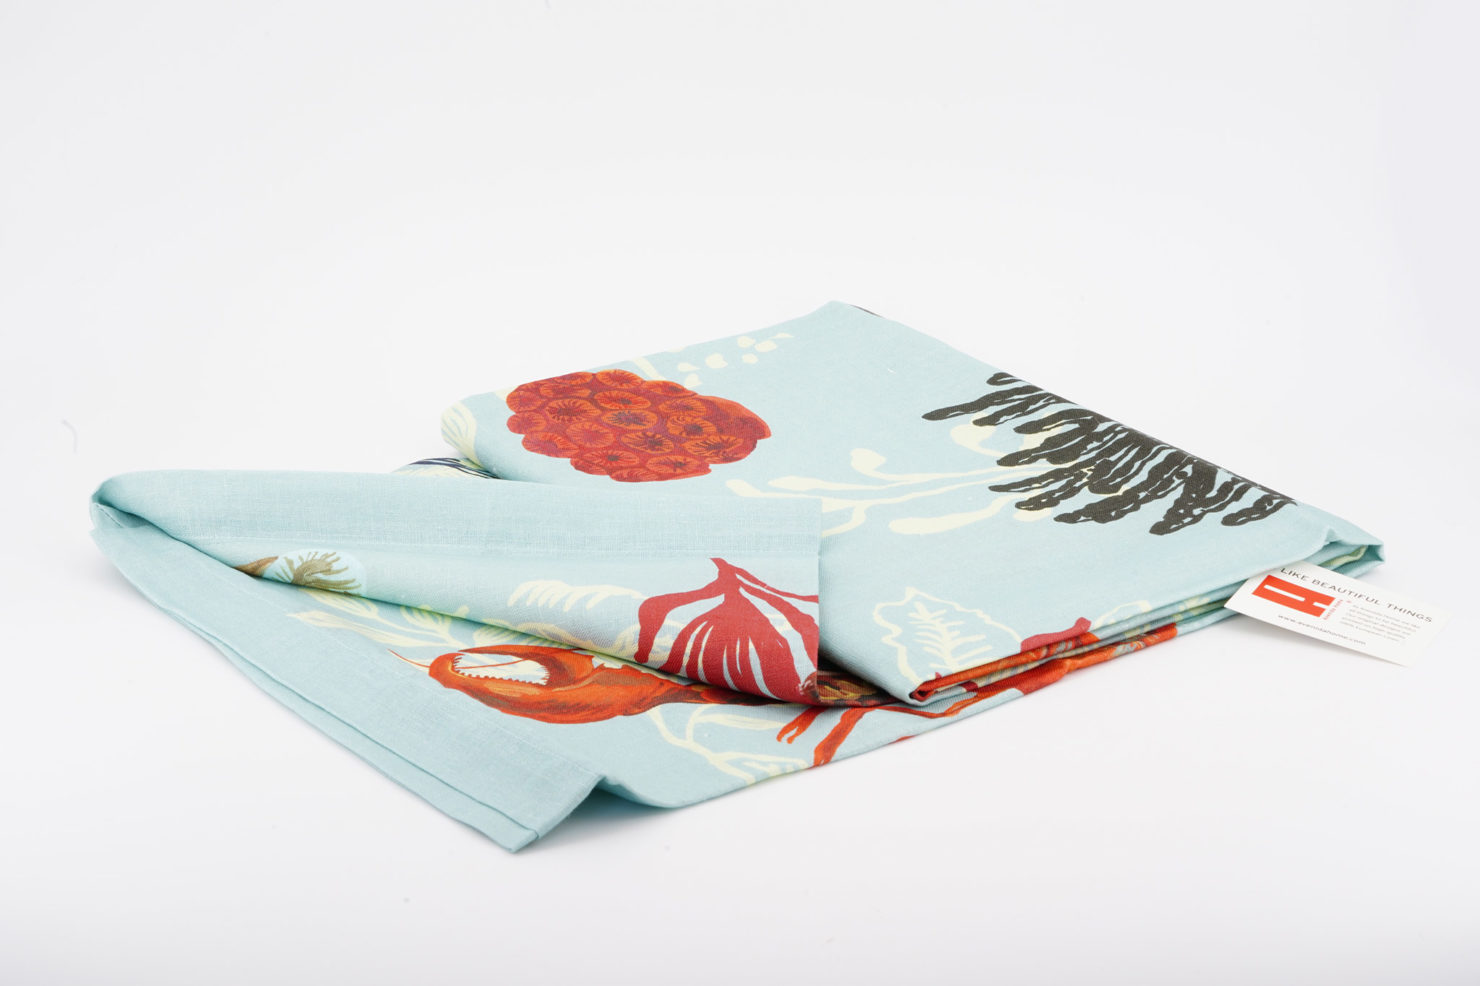 LOBSTER KITCHEN & TABLE LINENS BY NATHALIE LETE 150X200 AVENIDA HOME